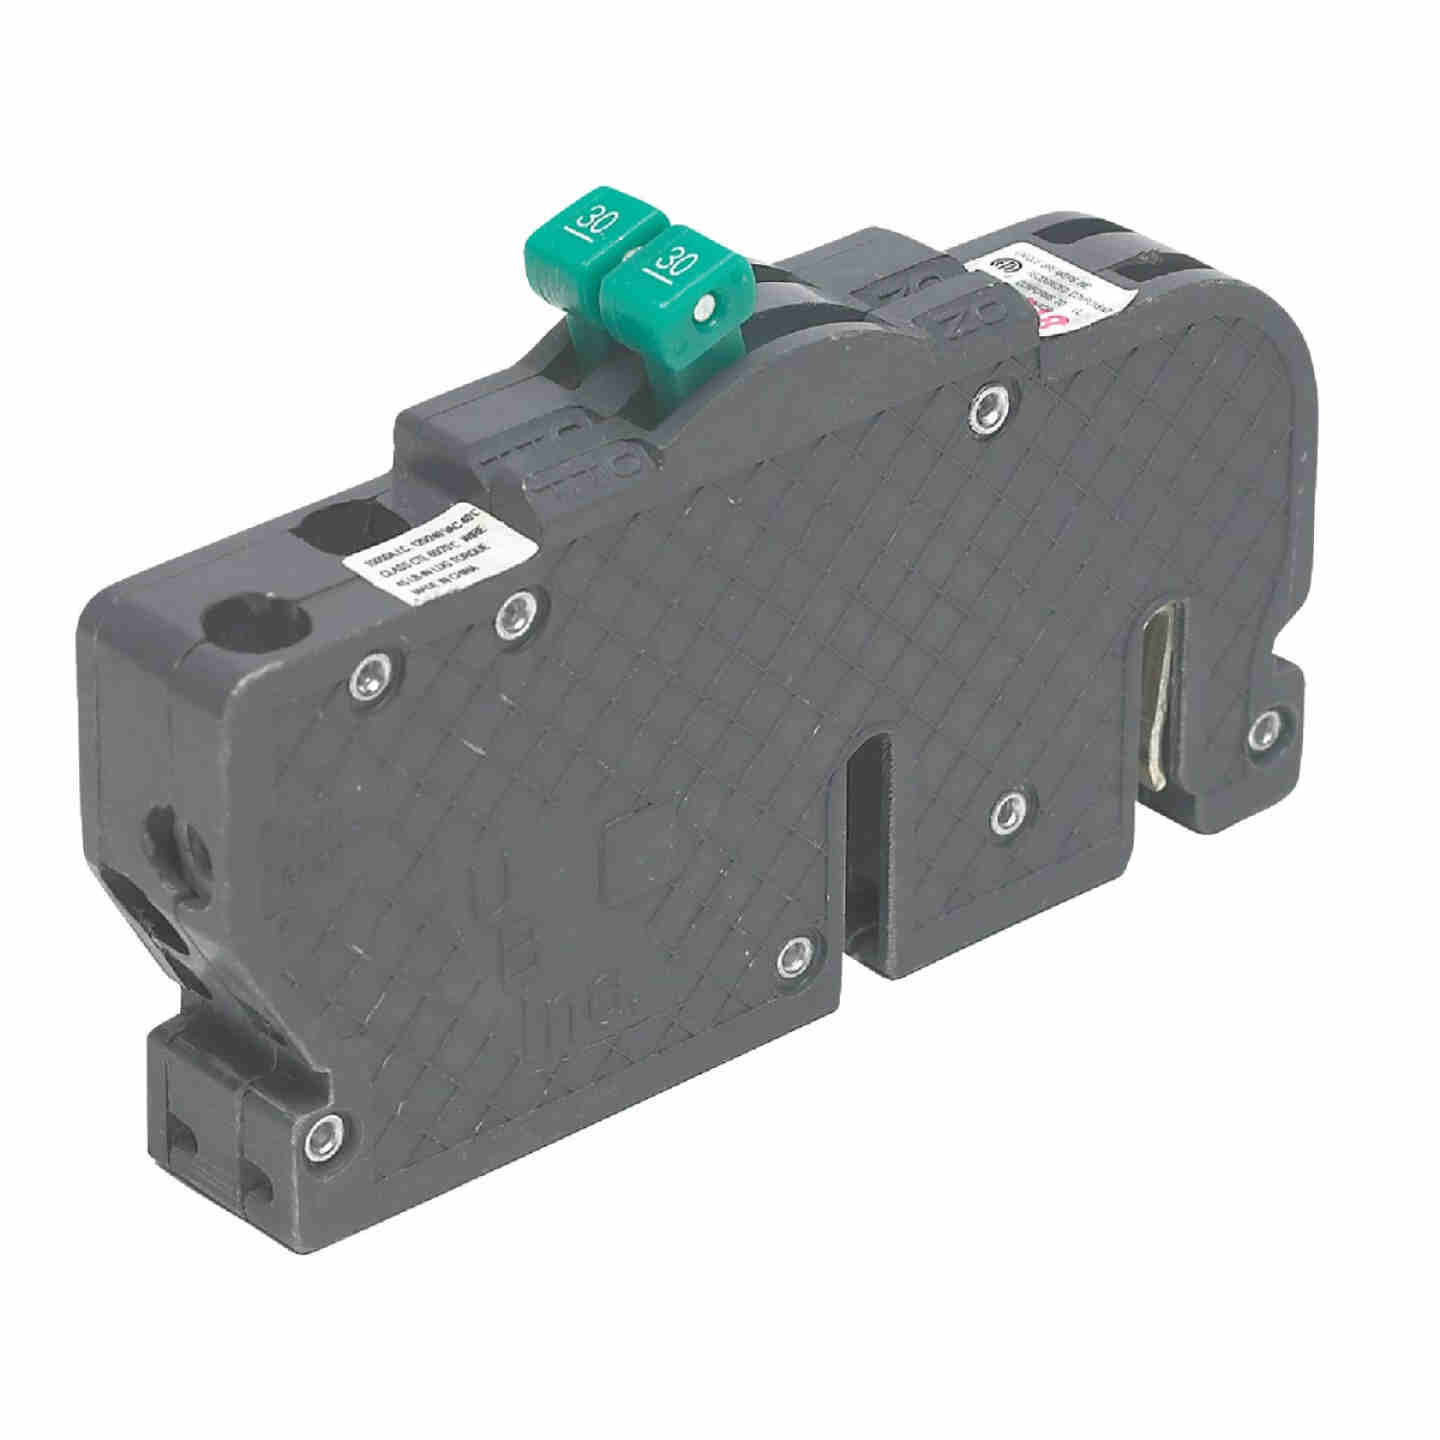 Connecticut Electric 60A/60A Twin Single-Pole Standard Trip Packaged Replacement Circuit Breaker For Zinsco Image 1